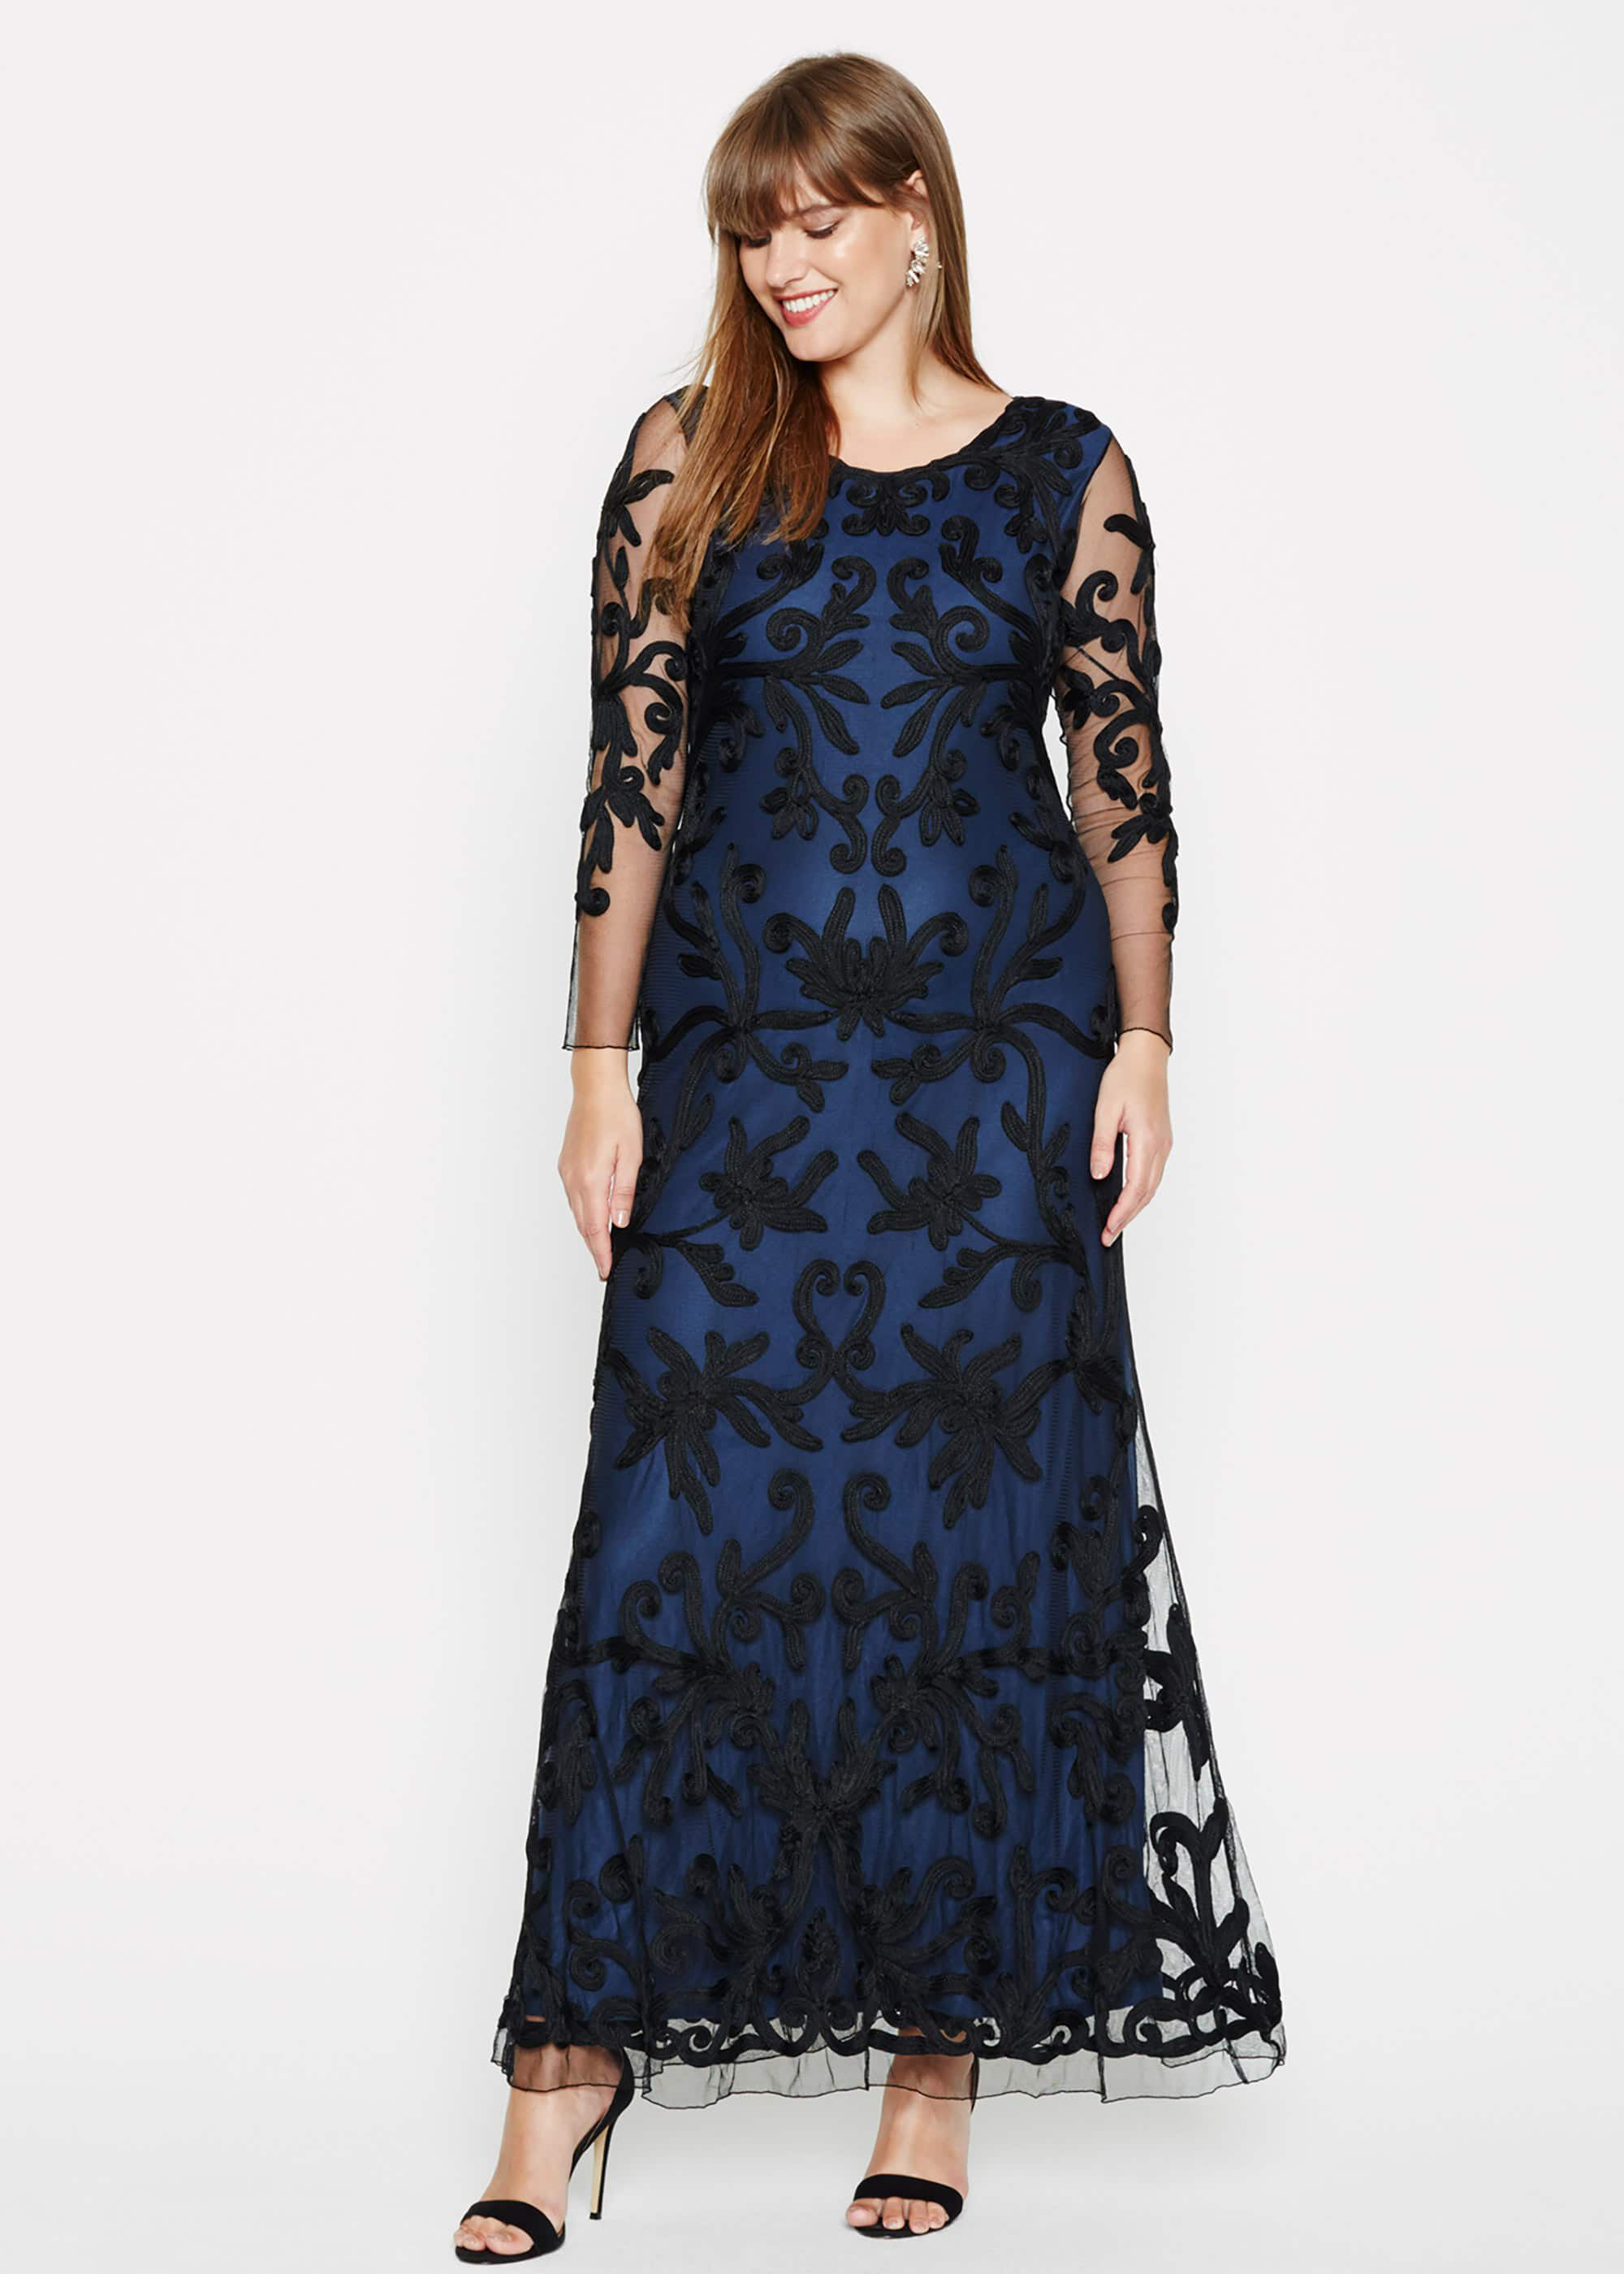 Studio 8 Jenna Tapework Maxi Dress, Blue, Maxi, Occasion Dress